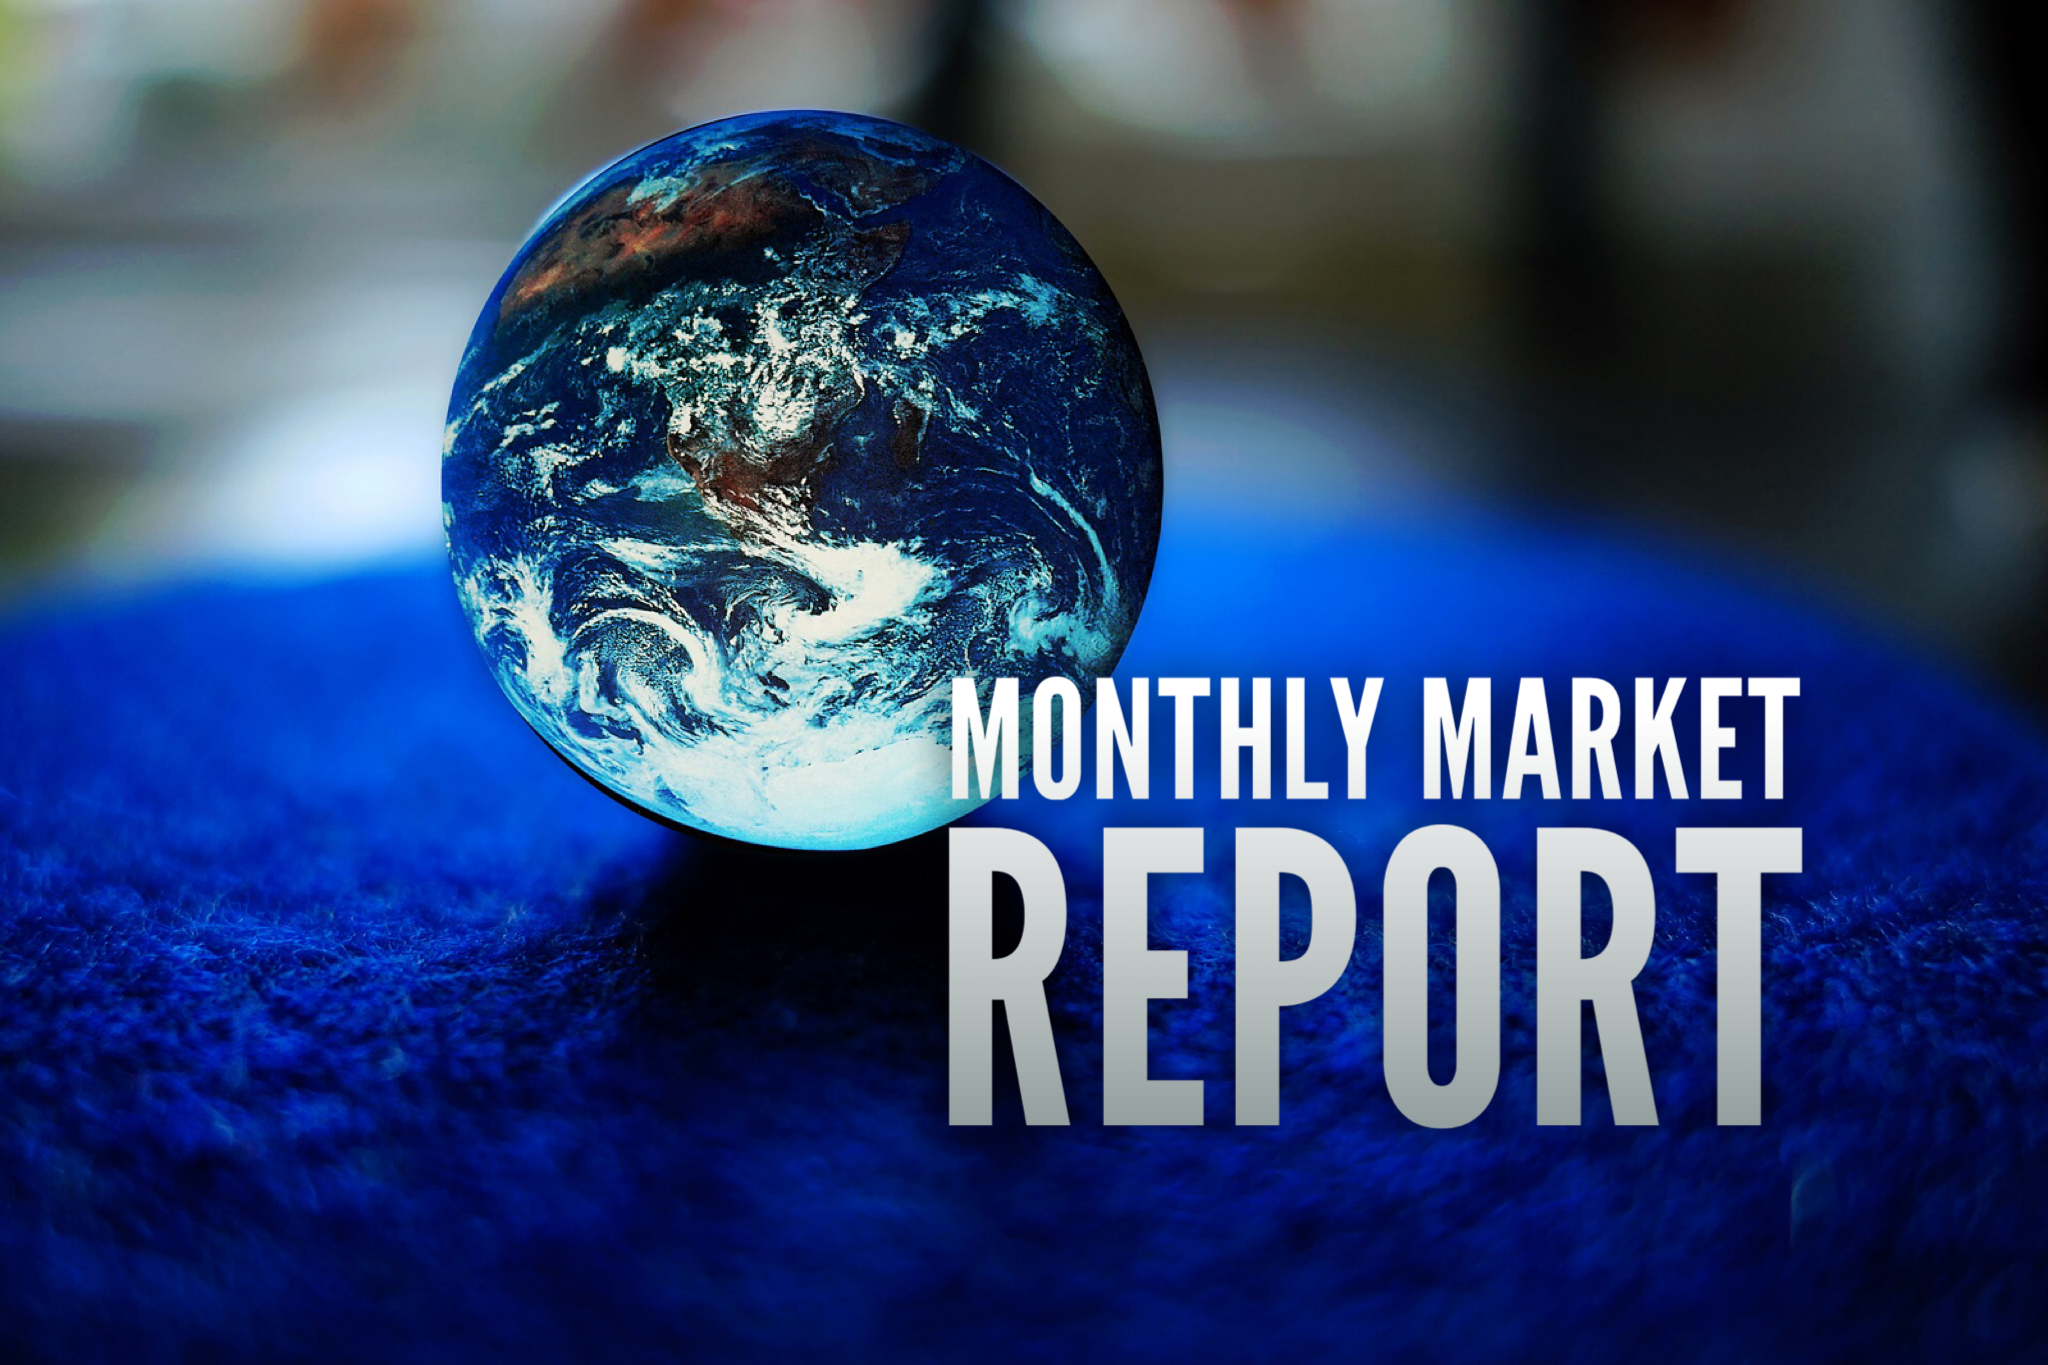 MONTHLY MARKET REPORT: JULY 2020